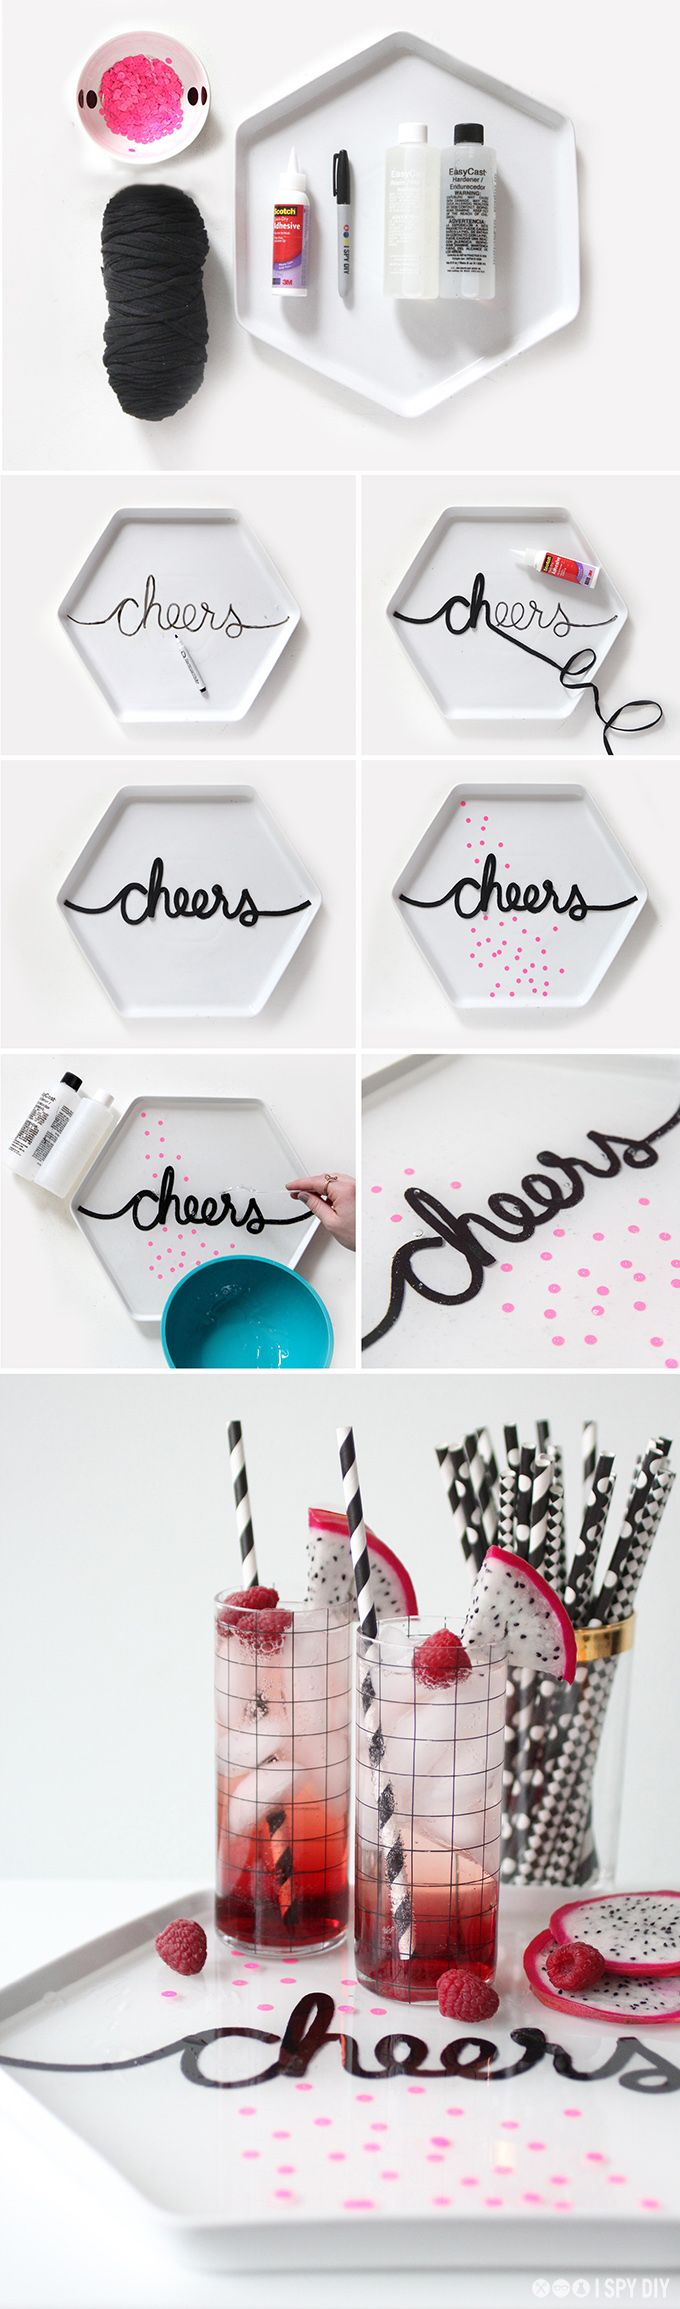 """How to make your own """"cheers"""" tray for a party"""